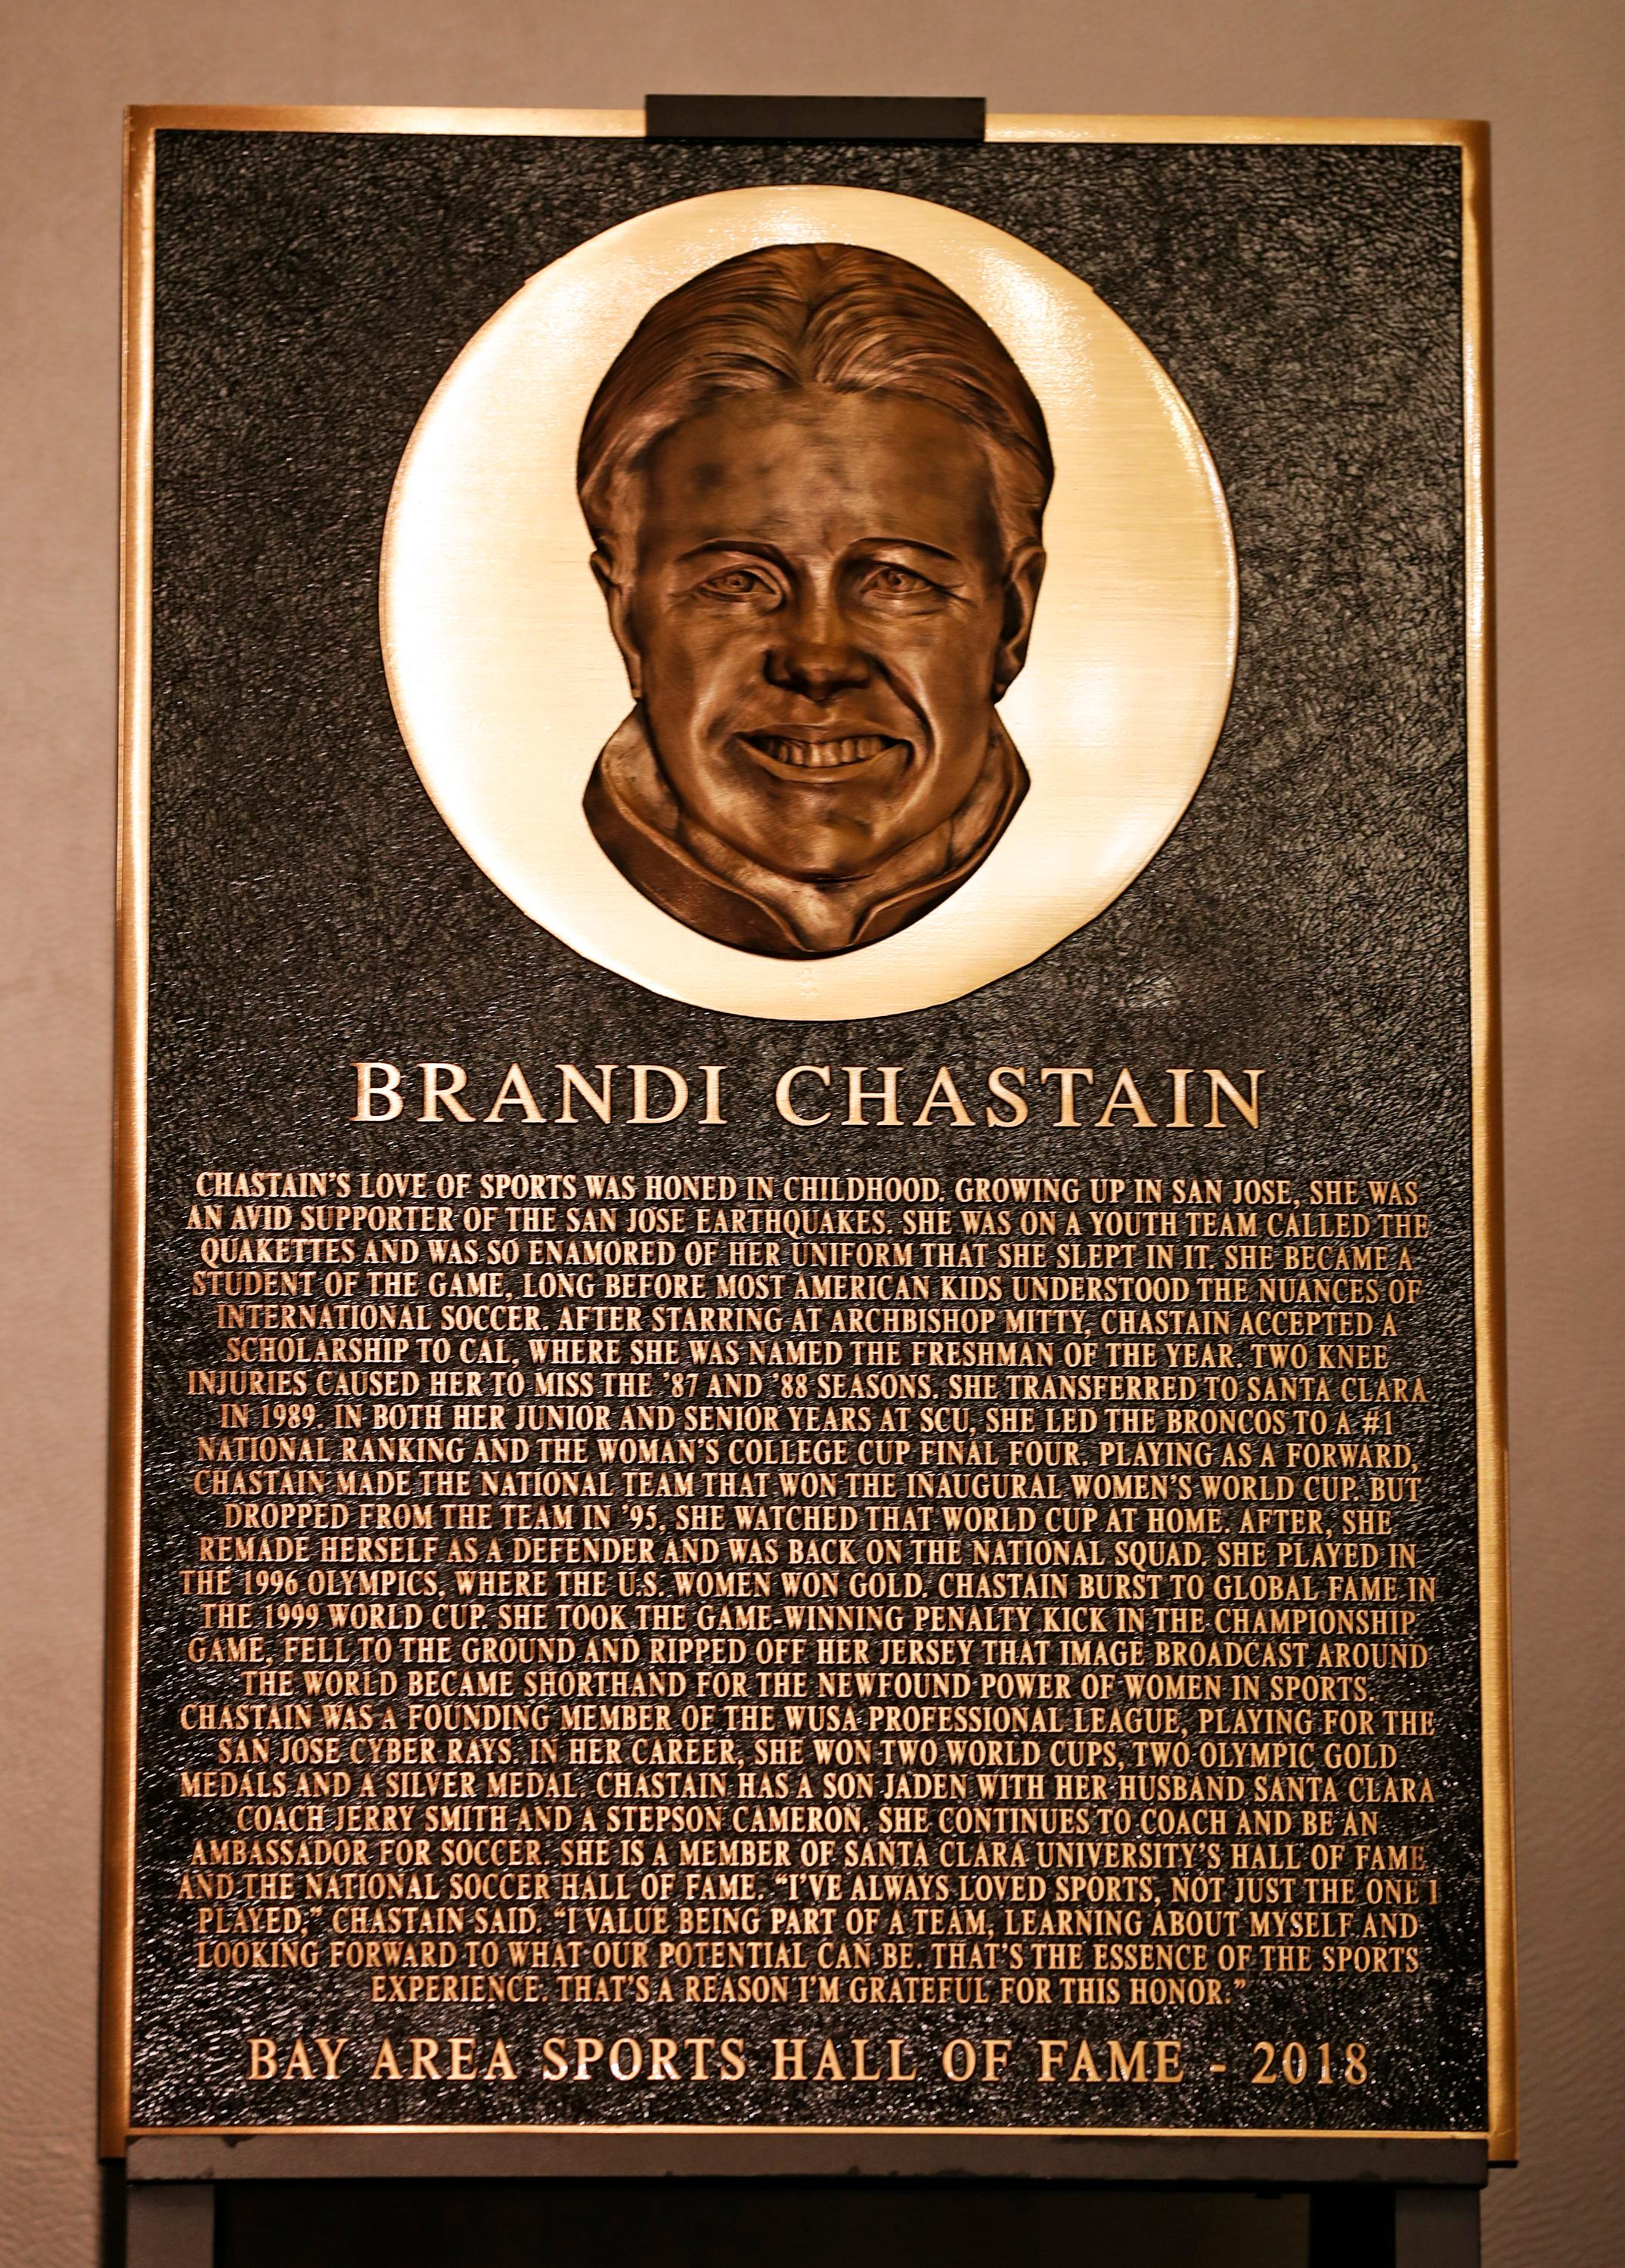 "In this photo taken Monday May 21, 2018, Bay Area Sports Hall of Hame inductee Brandi Chastain's plaque is displayed during a press conference in San Francisco. Social media is finding little to like about the likeness on a plaque honoring retired soccer champion Chastain. The Bay Area Sports Hall of Fame in San Francisco unveiled the plaque on Monday night. Chastain diplomatically said ""it's not the most flattering. But it's nice."" (Scott Strazzante/San Francisco Chronicle via AP)"